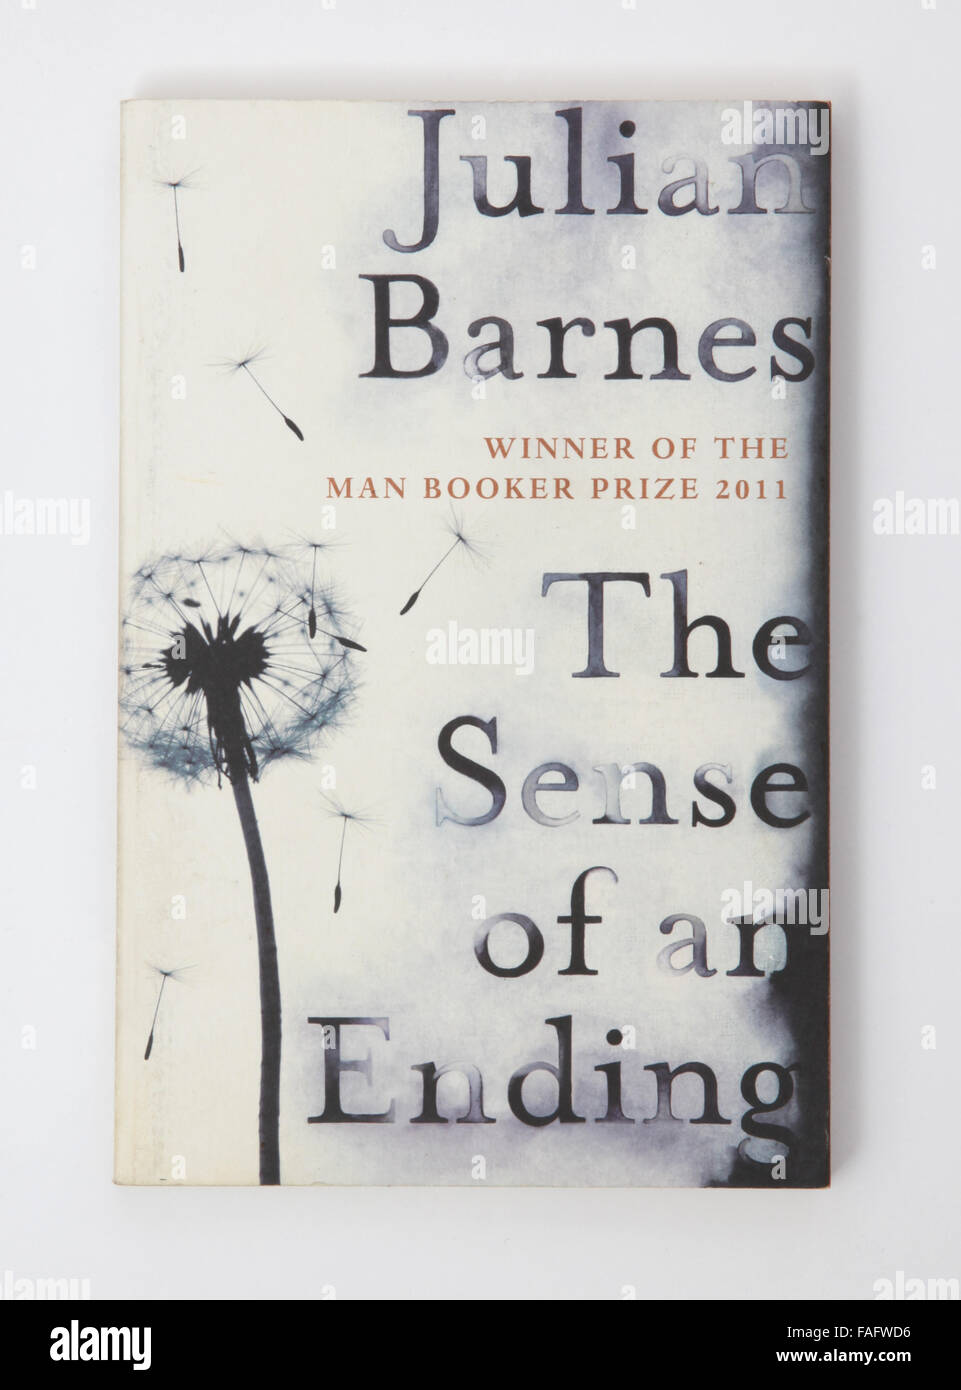 The book - The sense of an ending by Julian Barnes. Winner of The Man Booker Prize 2011 - Stock Image